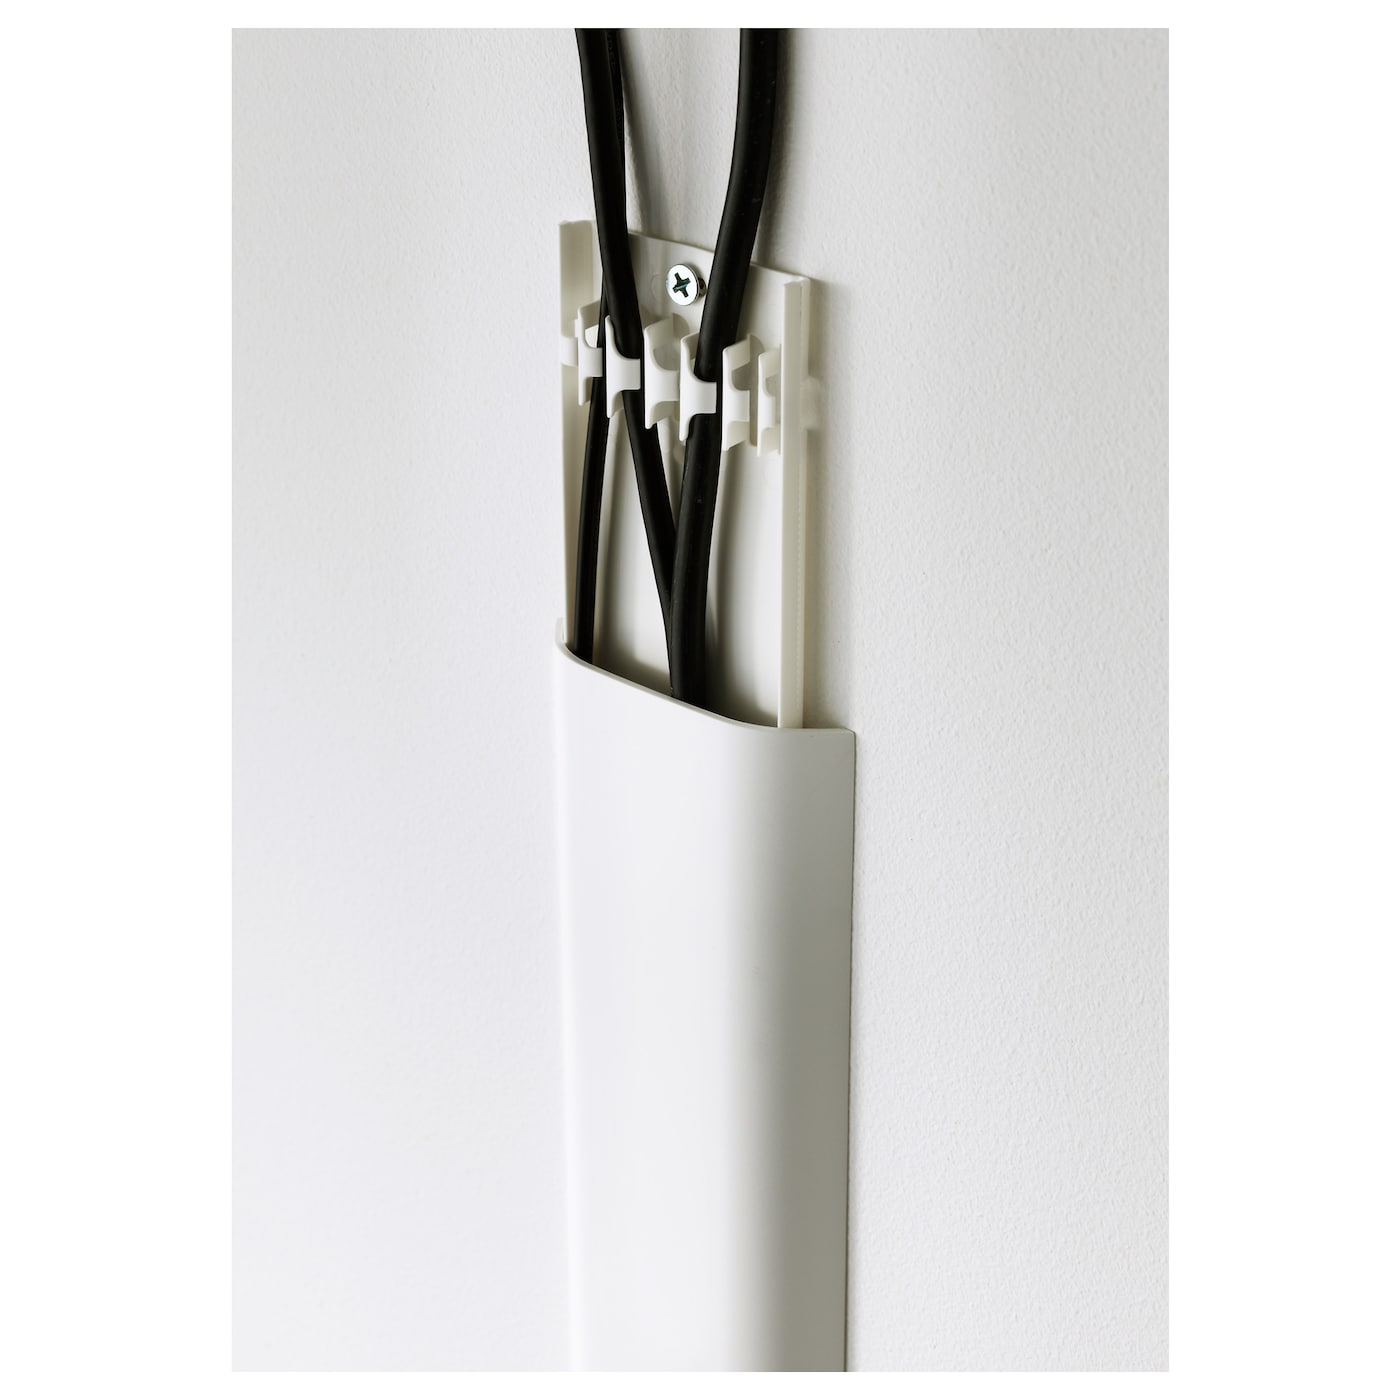 IKEA UPPLEVA cable cover strip Can be painted or covered with wallpaper to match your walls.